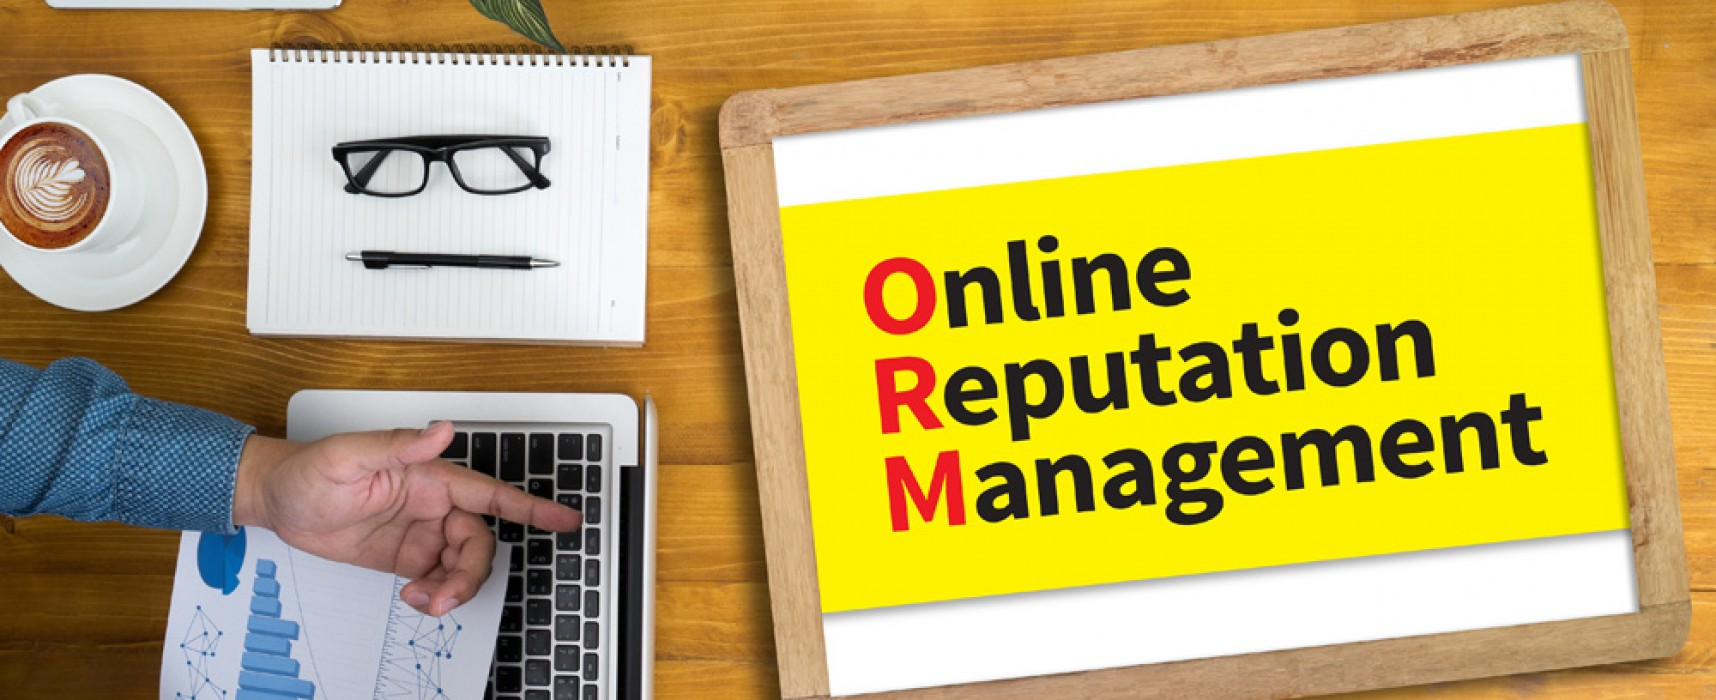 What Makes a Good Online Reputation Management Agency?